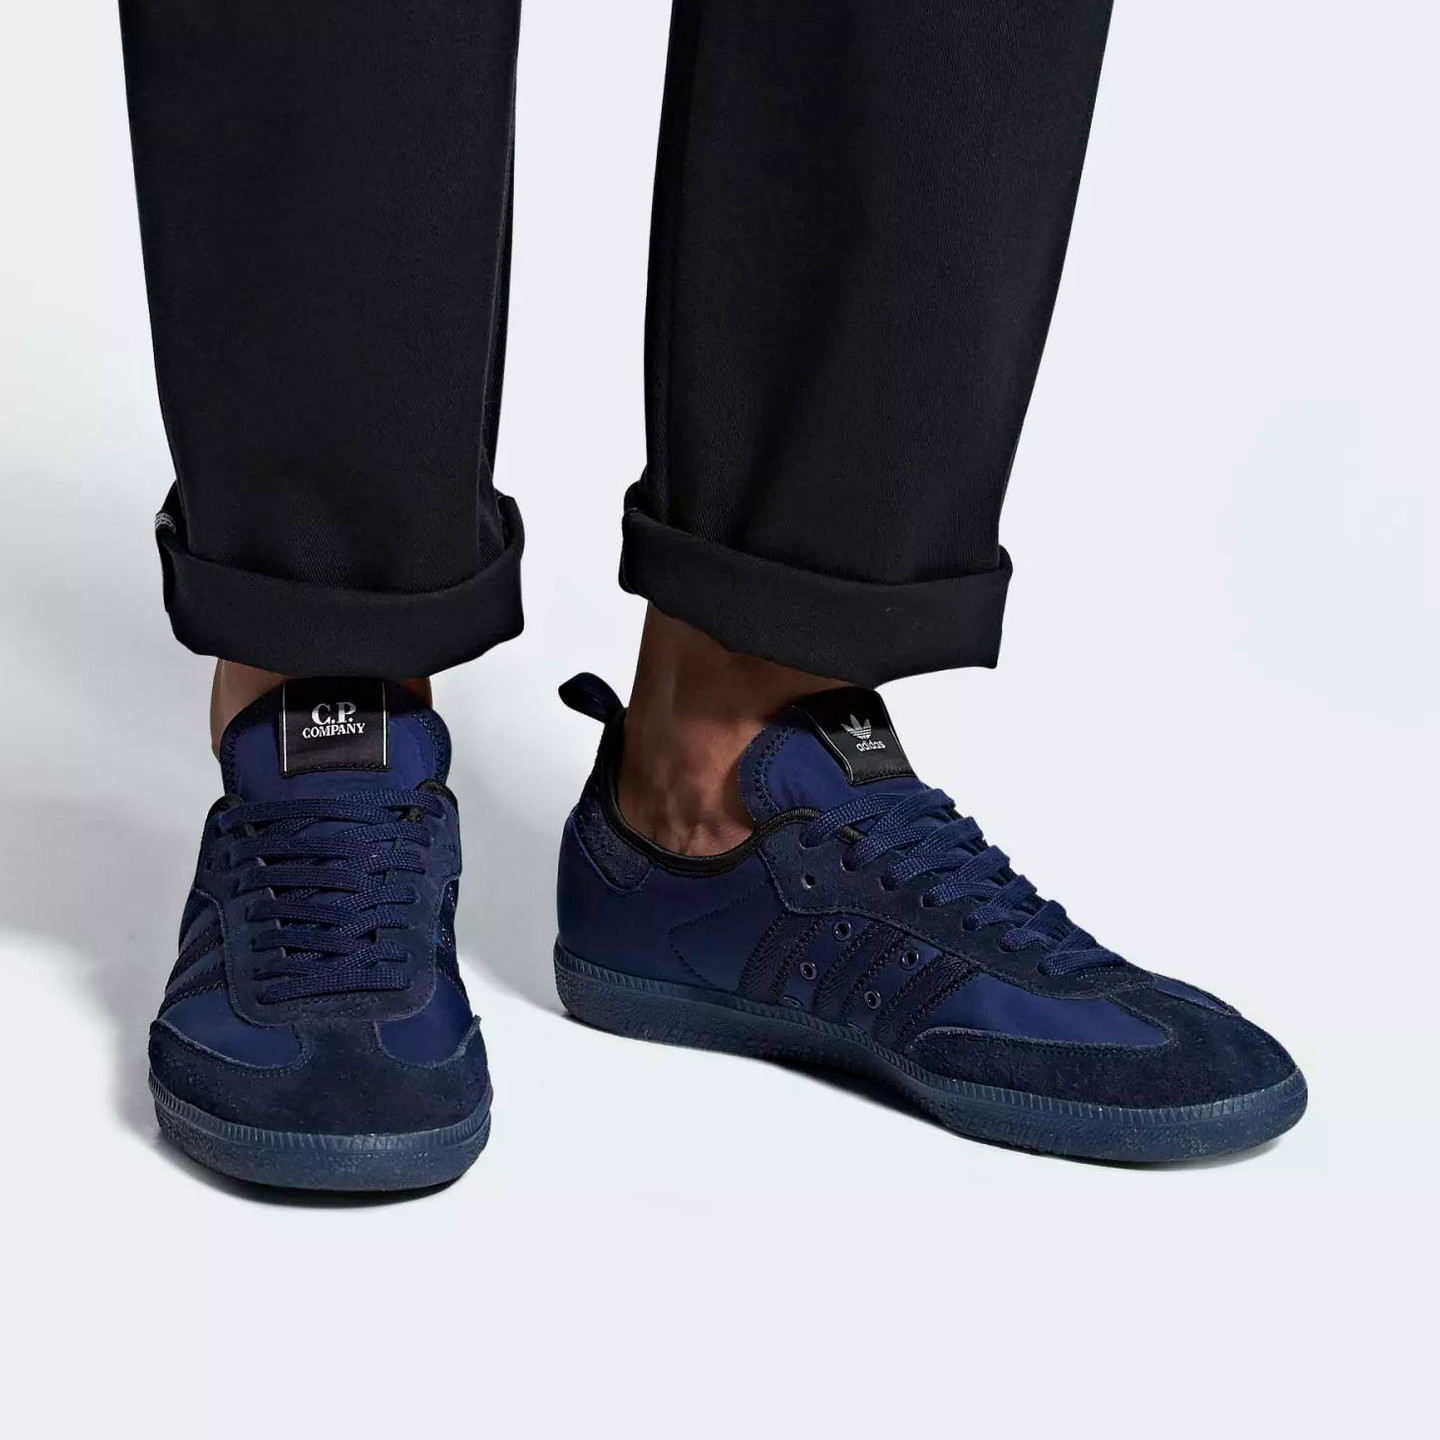 Adidas C.P. Company Samba Dark Blue / Night Sky / Dark Purple CG5957